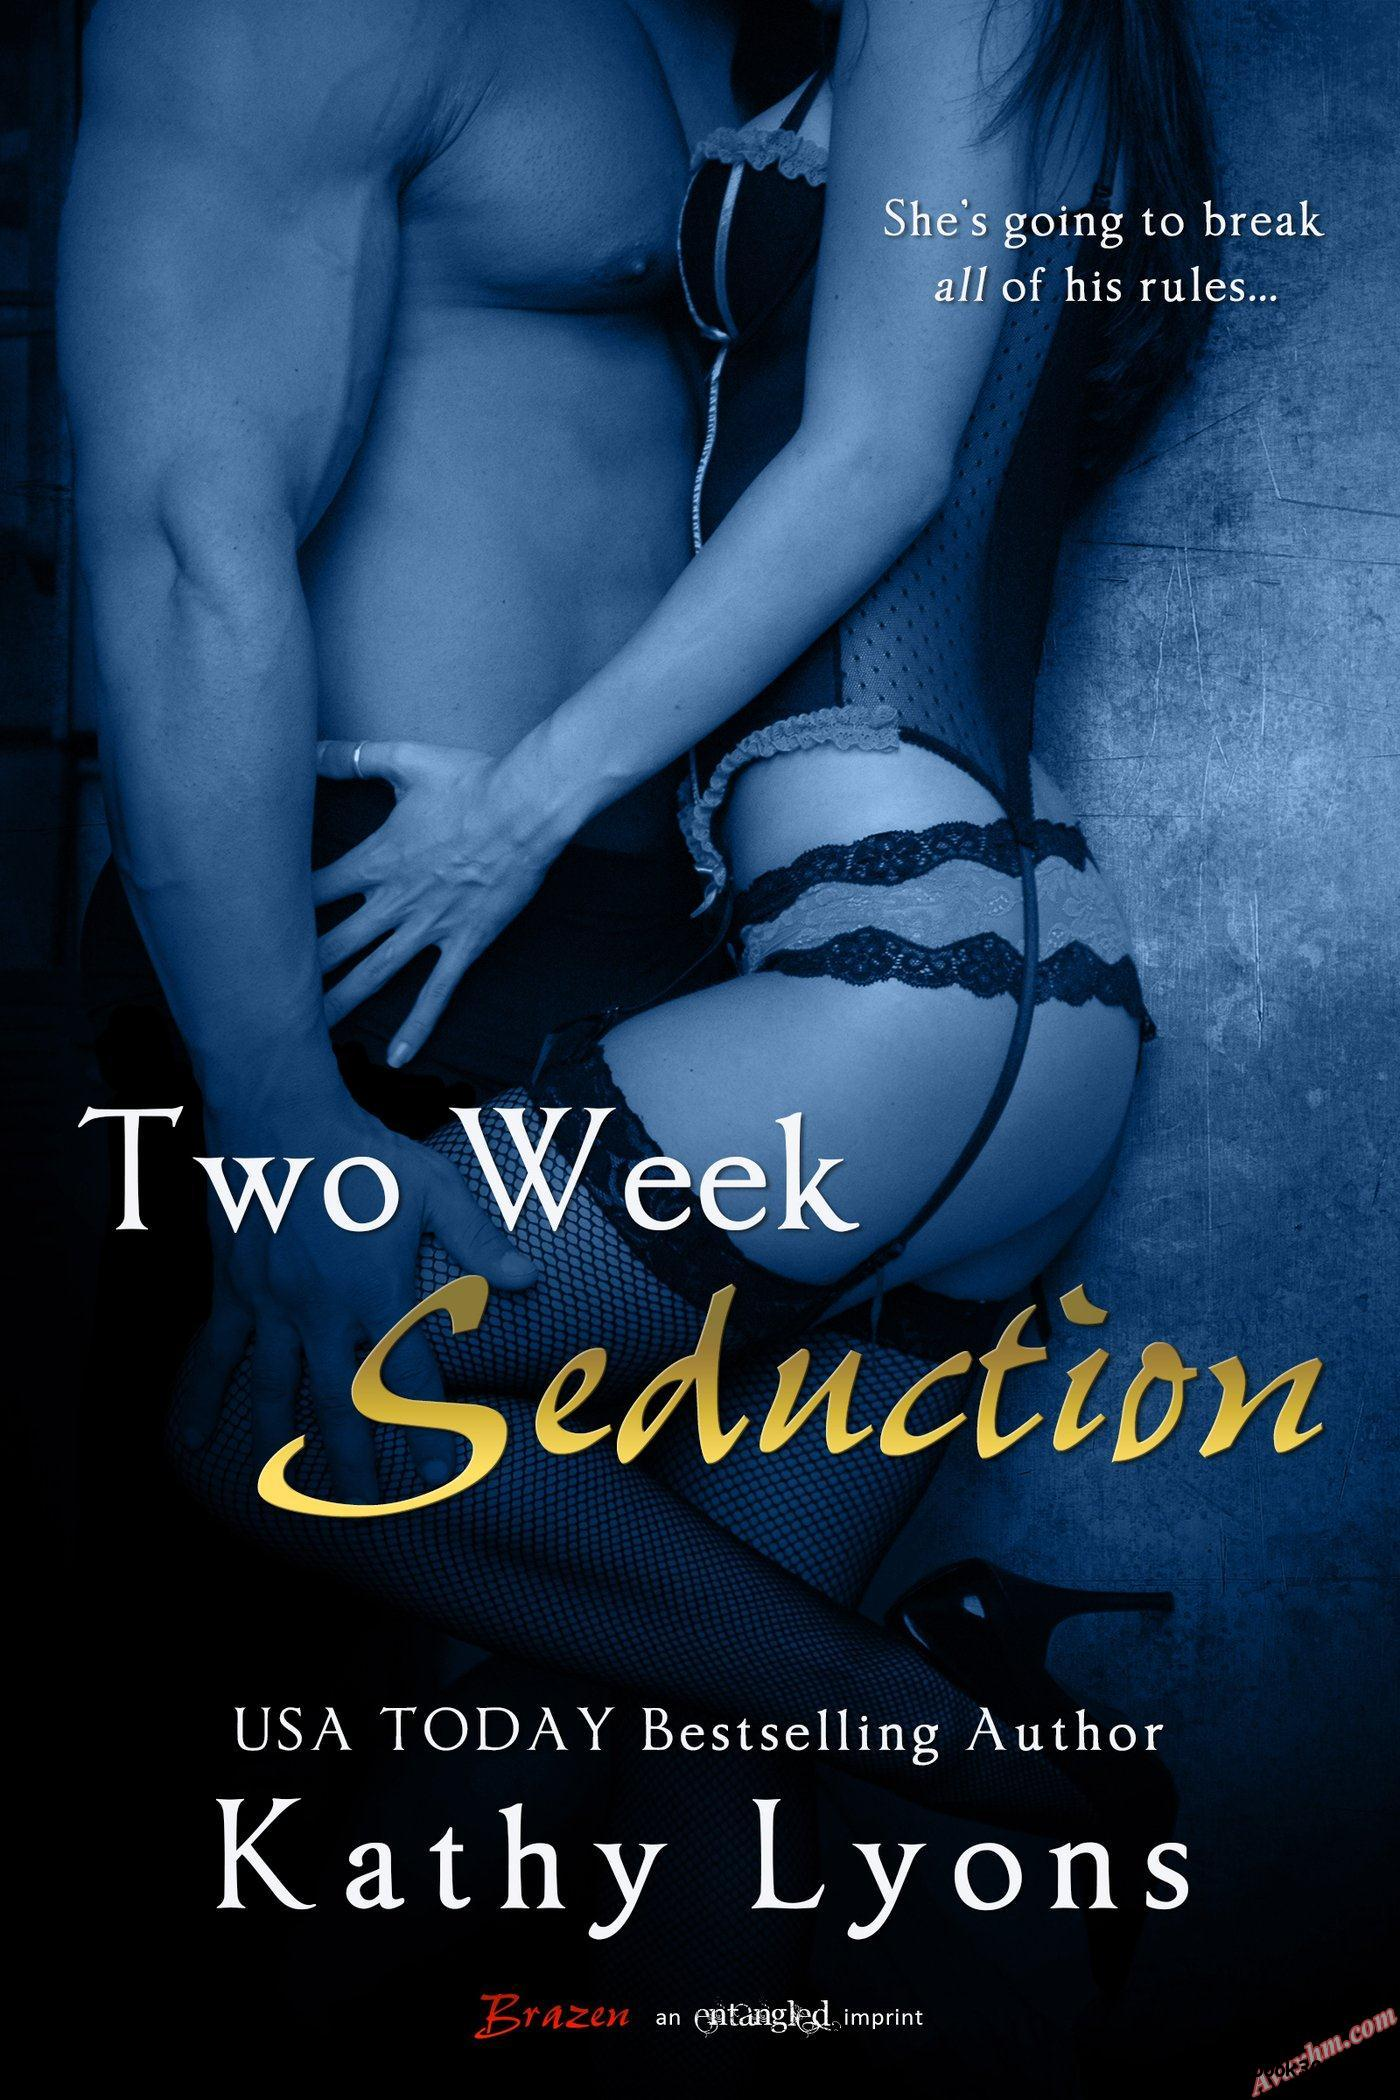 Two Week Seduction (Entangled Brazen) free download